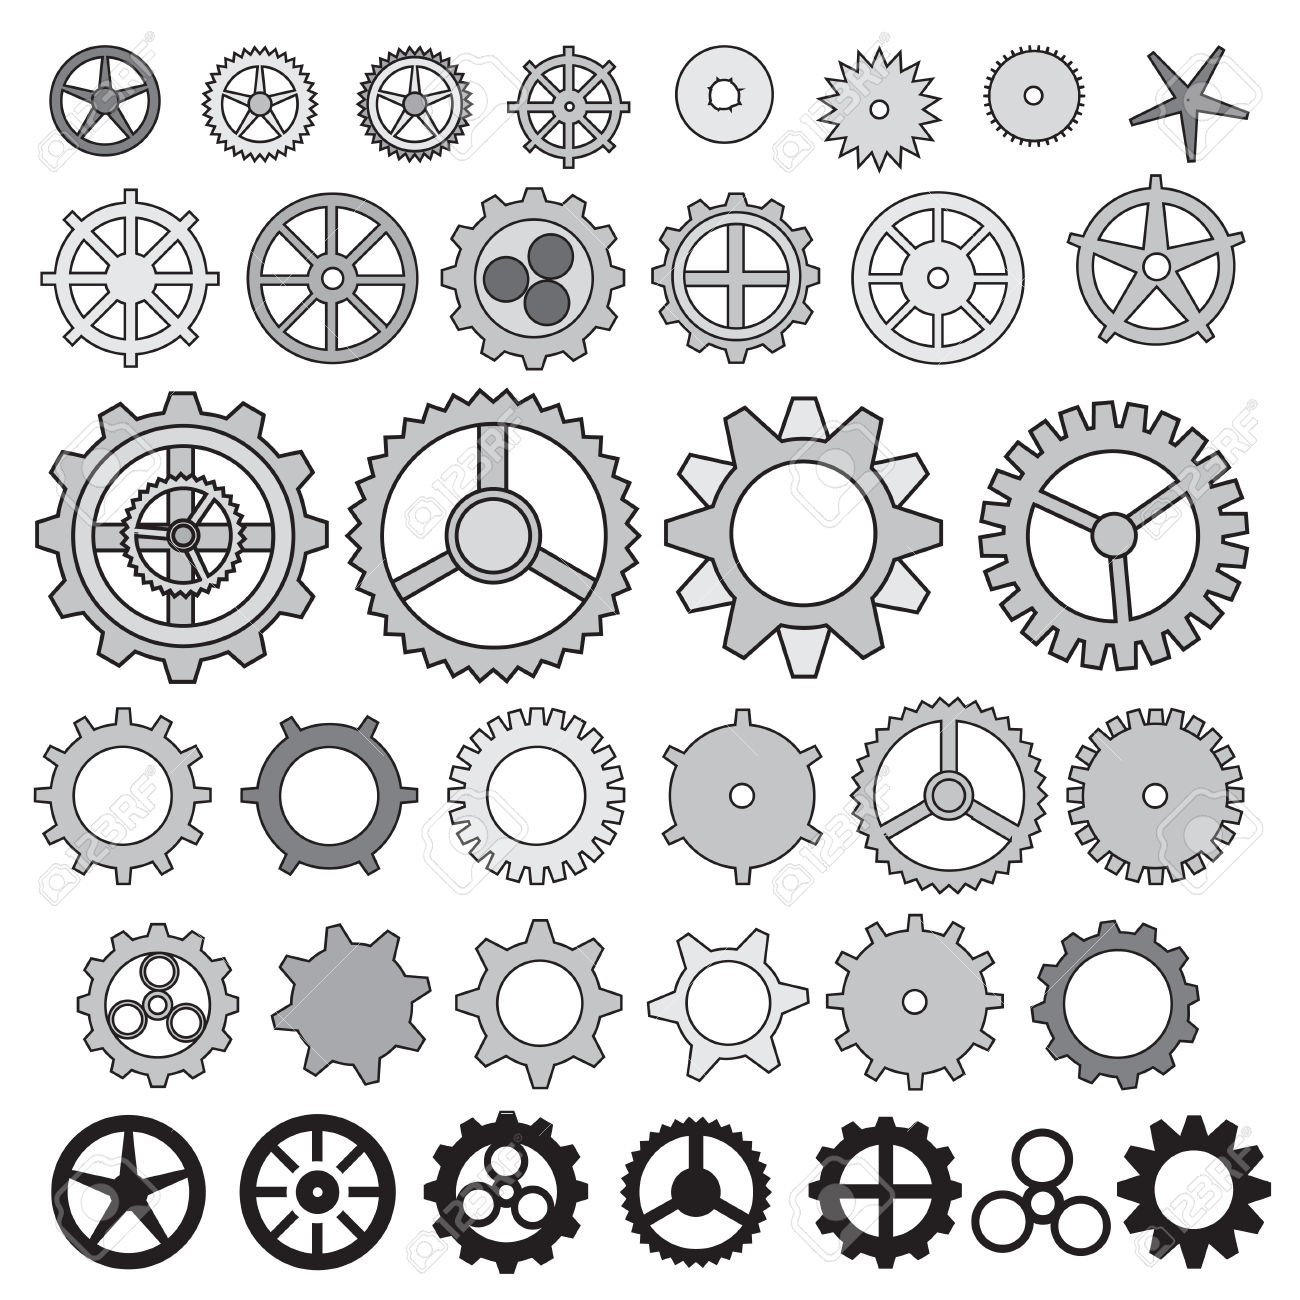 Machine clipart object Gear Vector Collection Vector Cogwheel